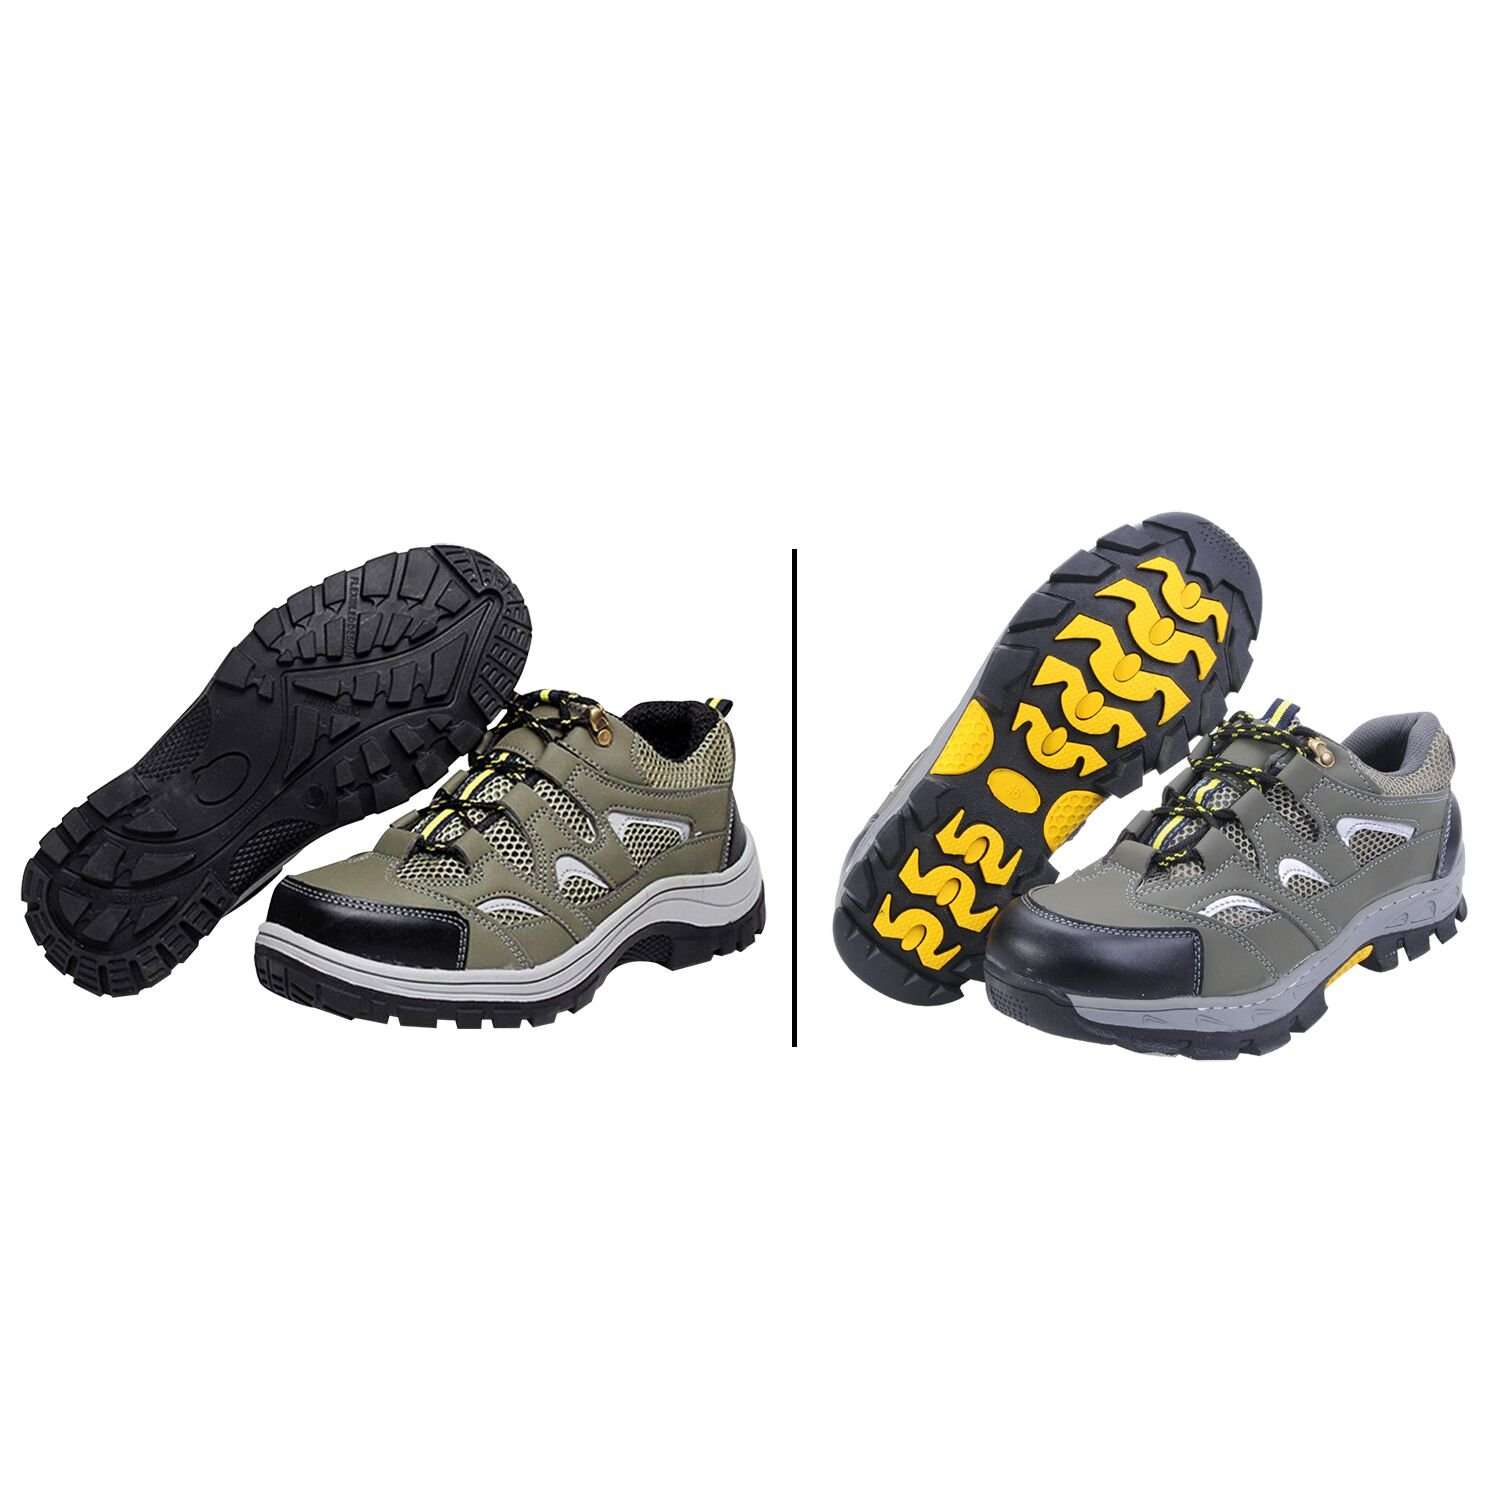 Men's Safety Shoes Work Shoes Comp Steel Toe Green EU46 US10.5